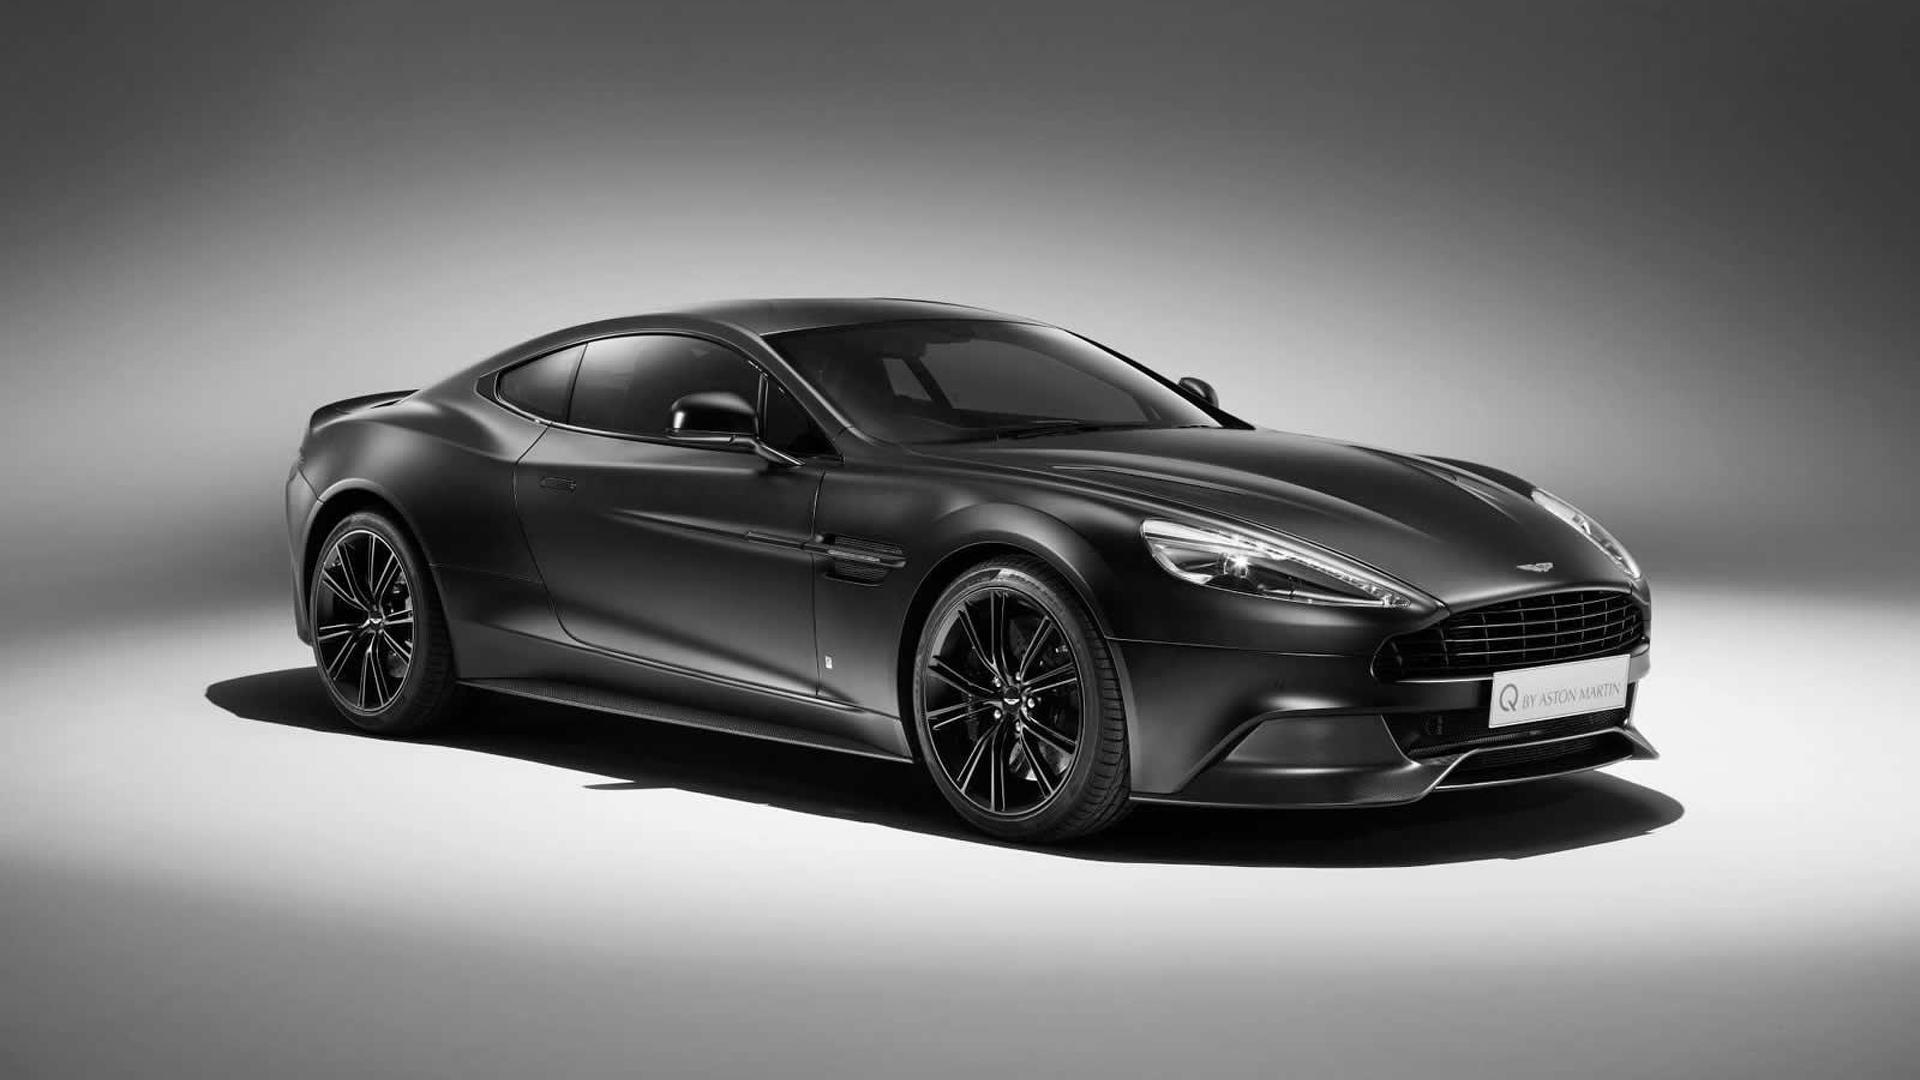 Aston Martin Vantage & Vanquish replacements coming by 2018